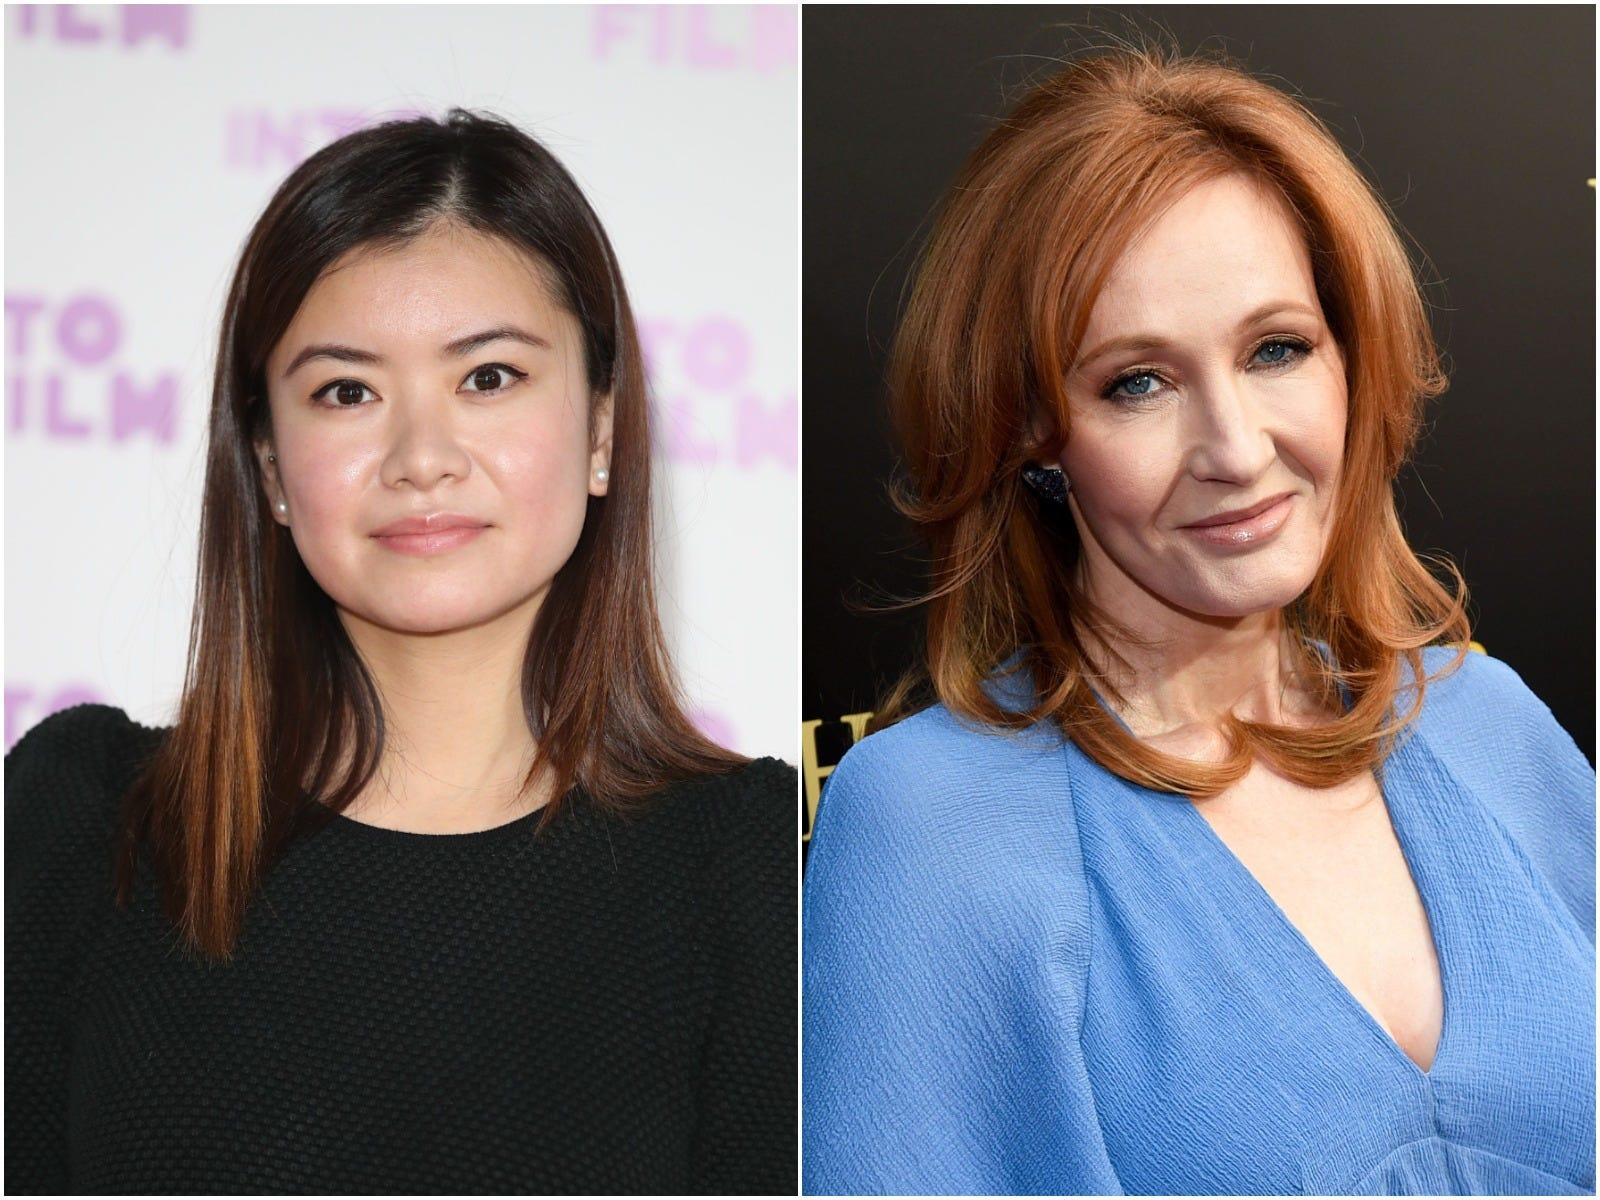 the actress who played cho chang in harry potter responded after jk rowling was called out for the character s name business insider india business insider india